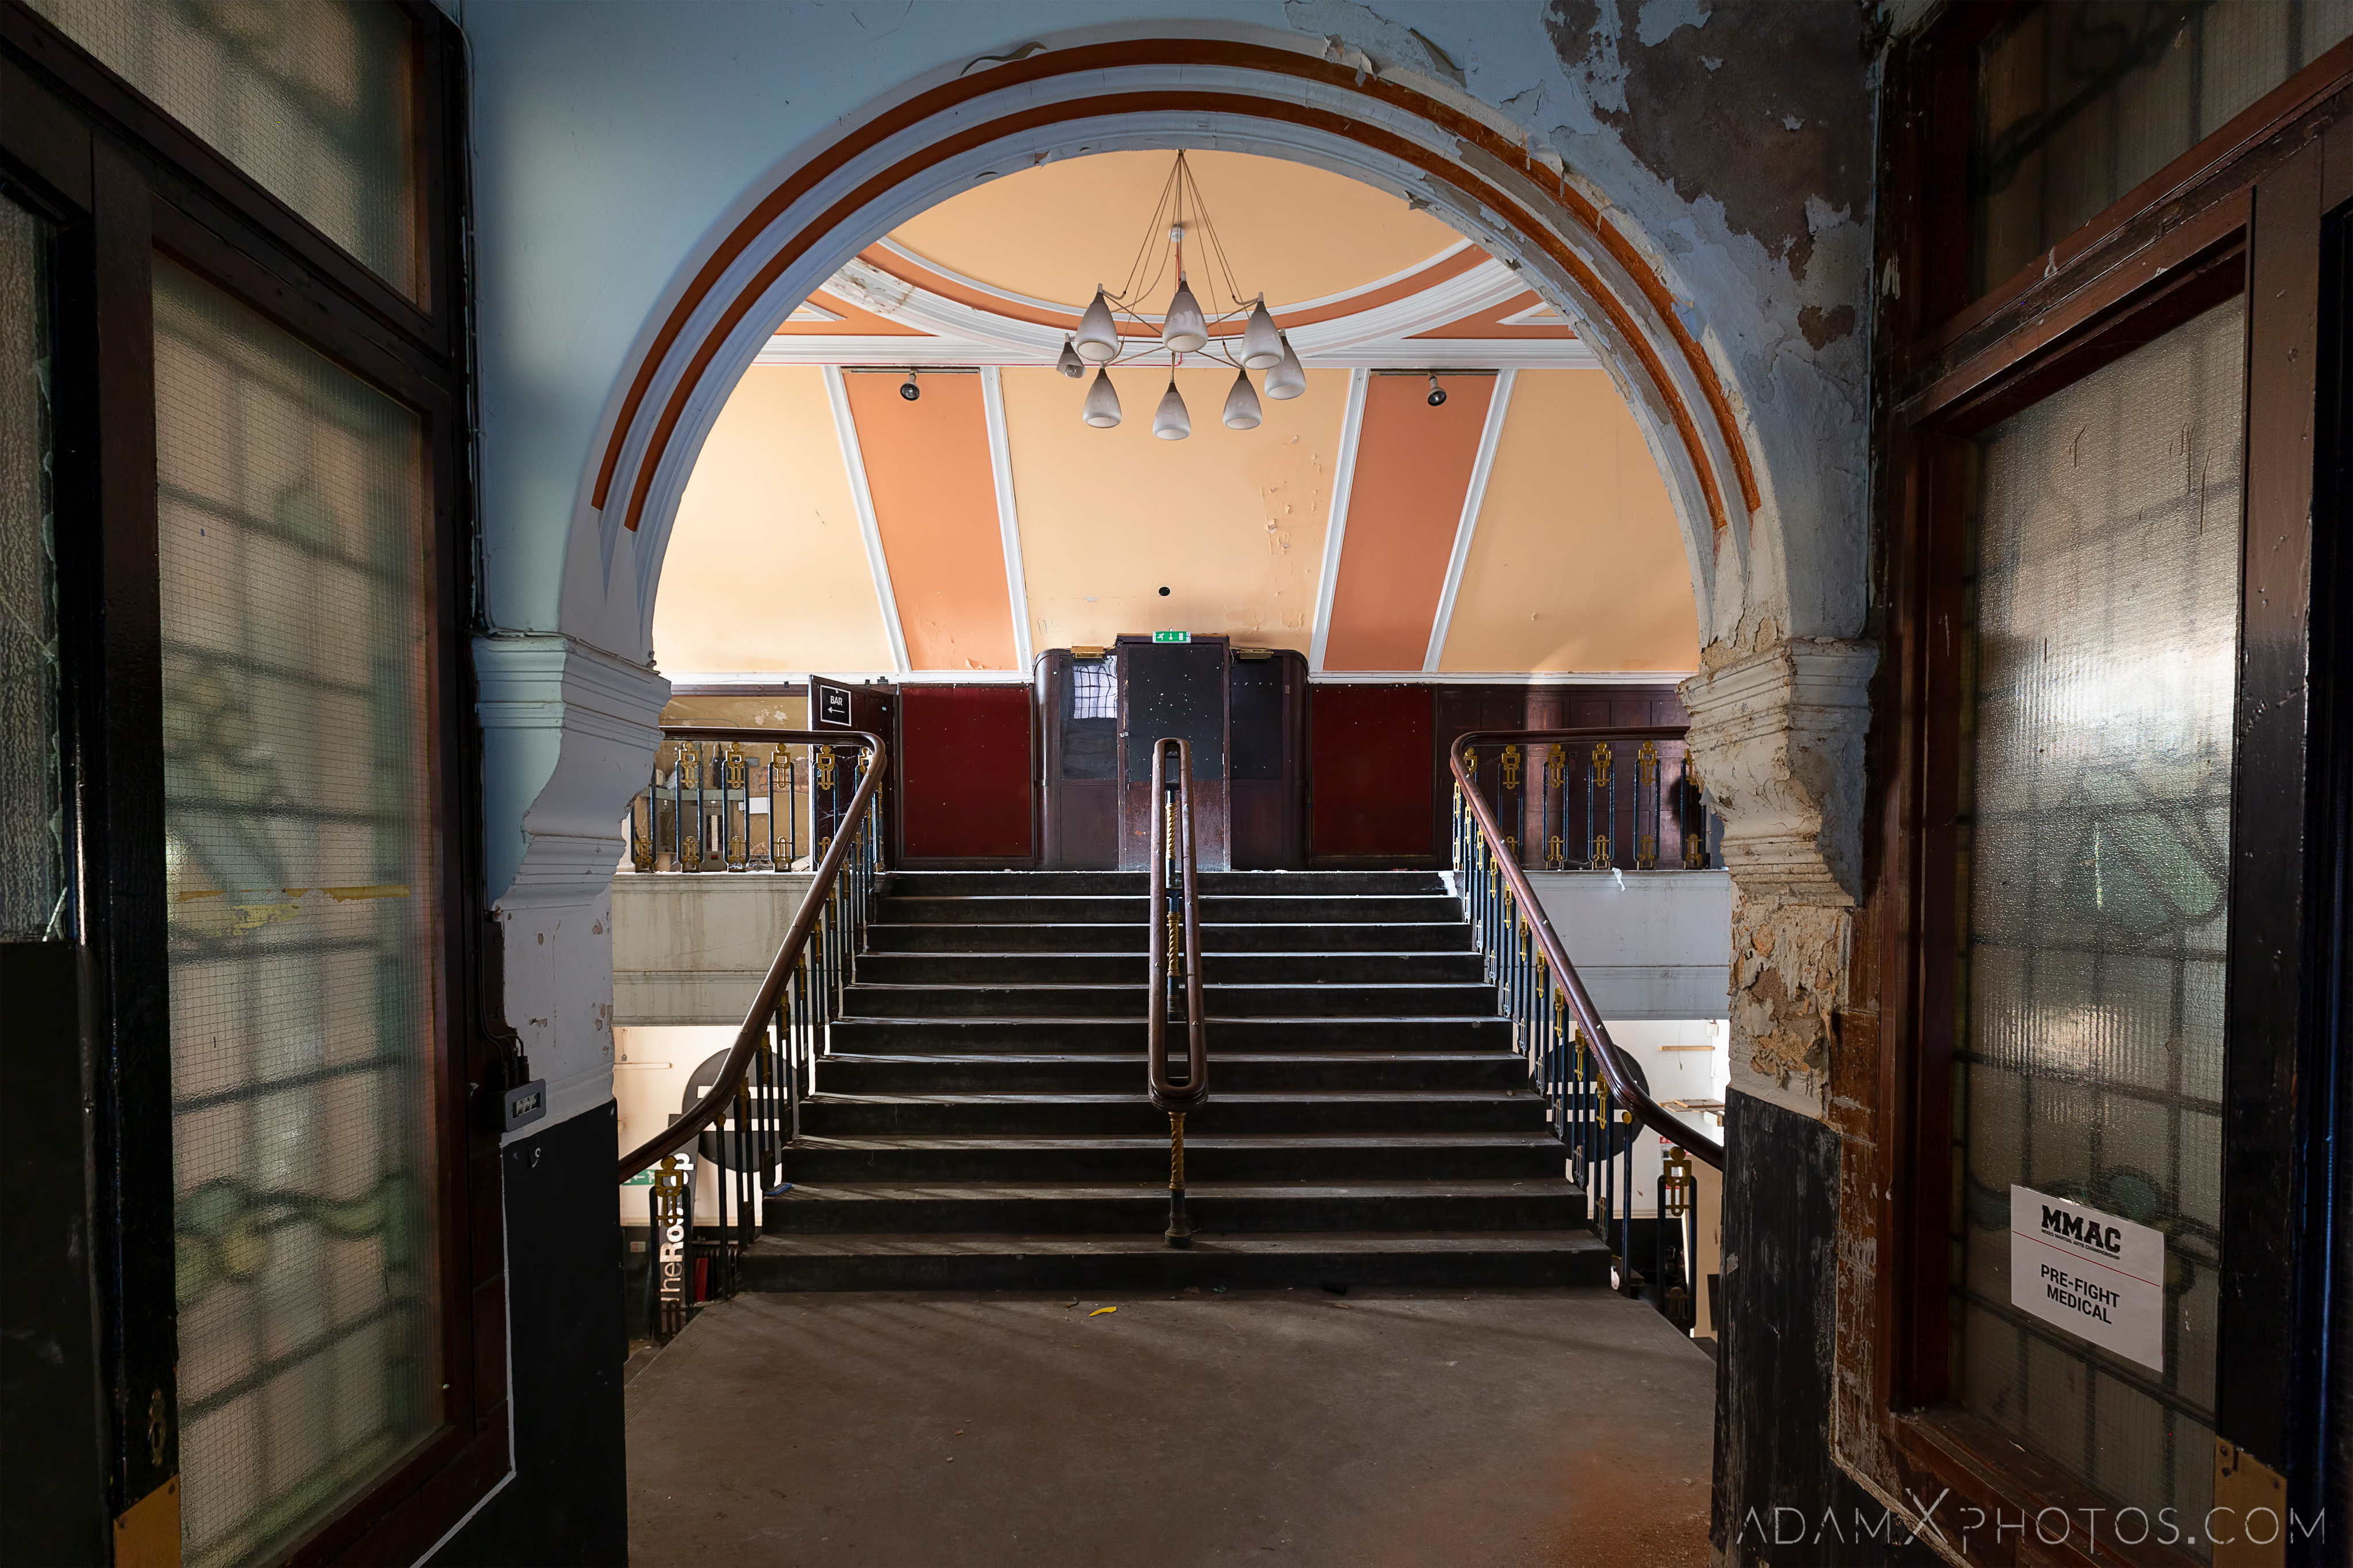 Lobby foyer stairs Birmingham Methodist Central Hall Q Club Adam X Urbex Urban Exploration Access 2018 Abandoned decay lost forgotten derelict location creepy haunting eerie